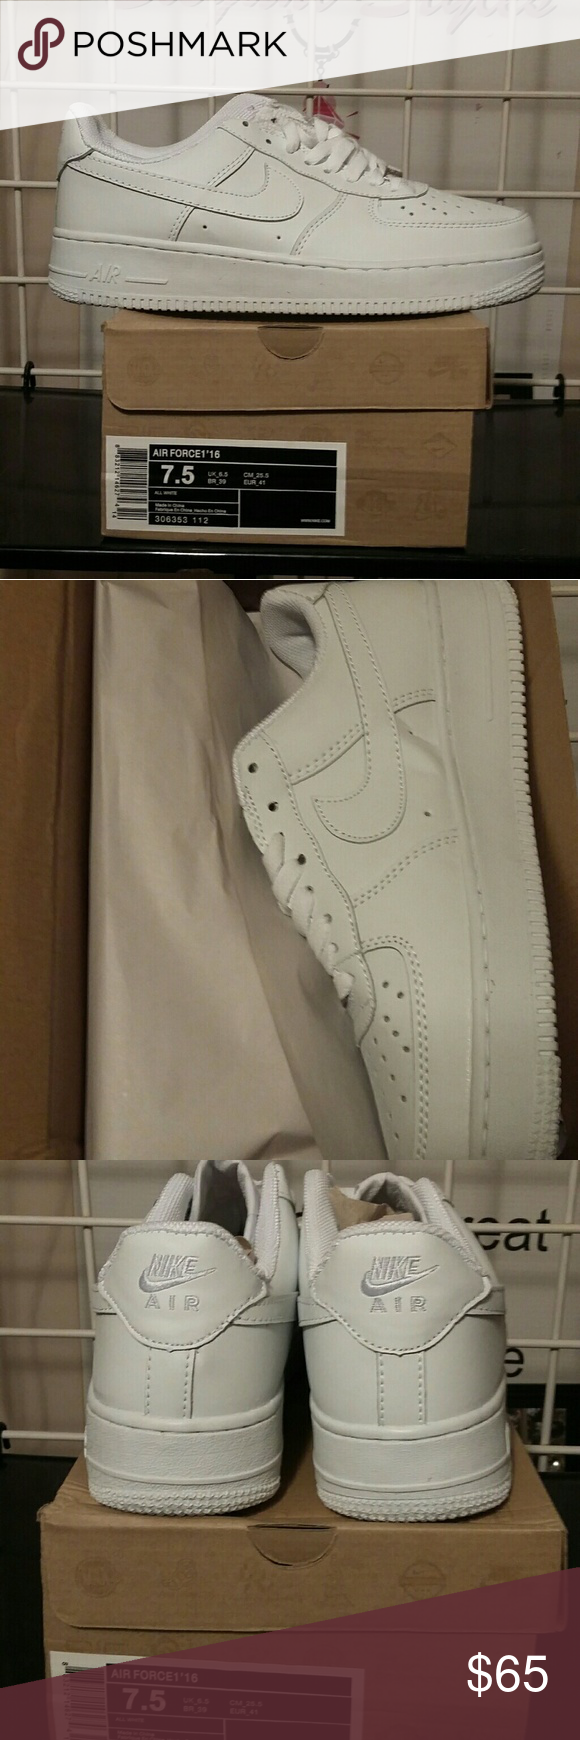 38e07d8f60a3 Nike Air force 1. New with box. Size 7.5 Nike Air force 1. New with box. Size  7.5. White. Nike Shoes Sneakers